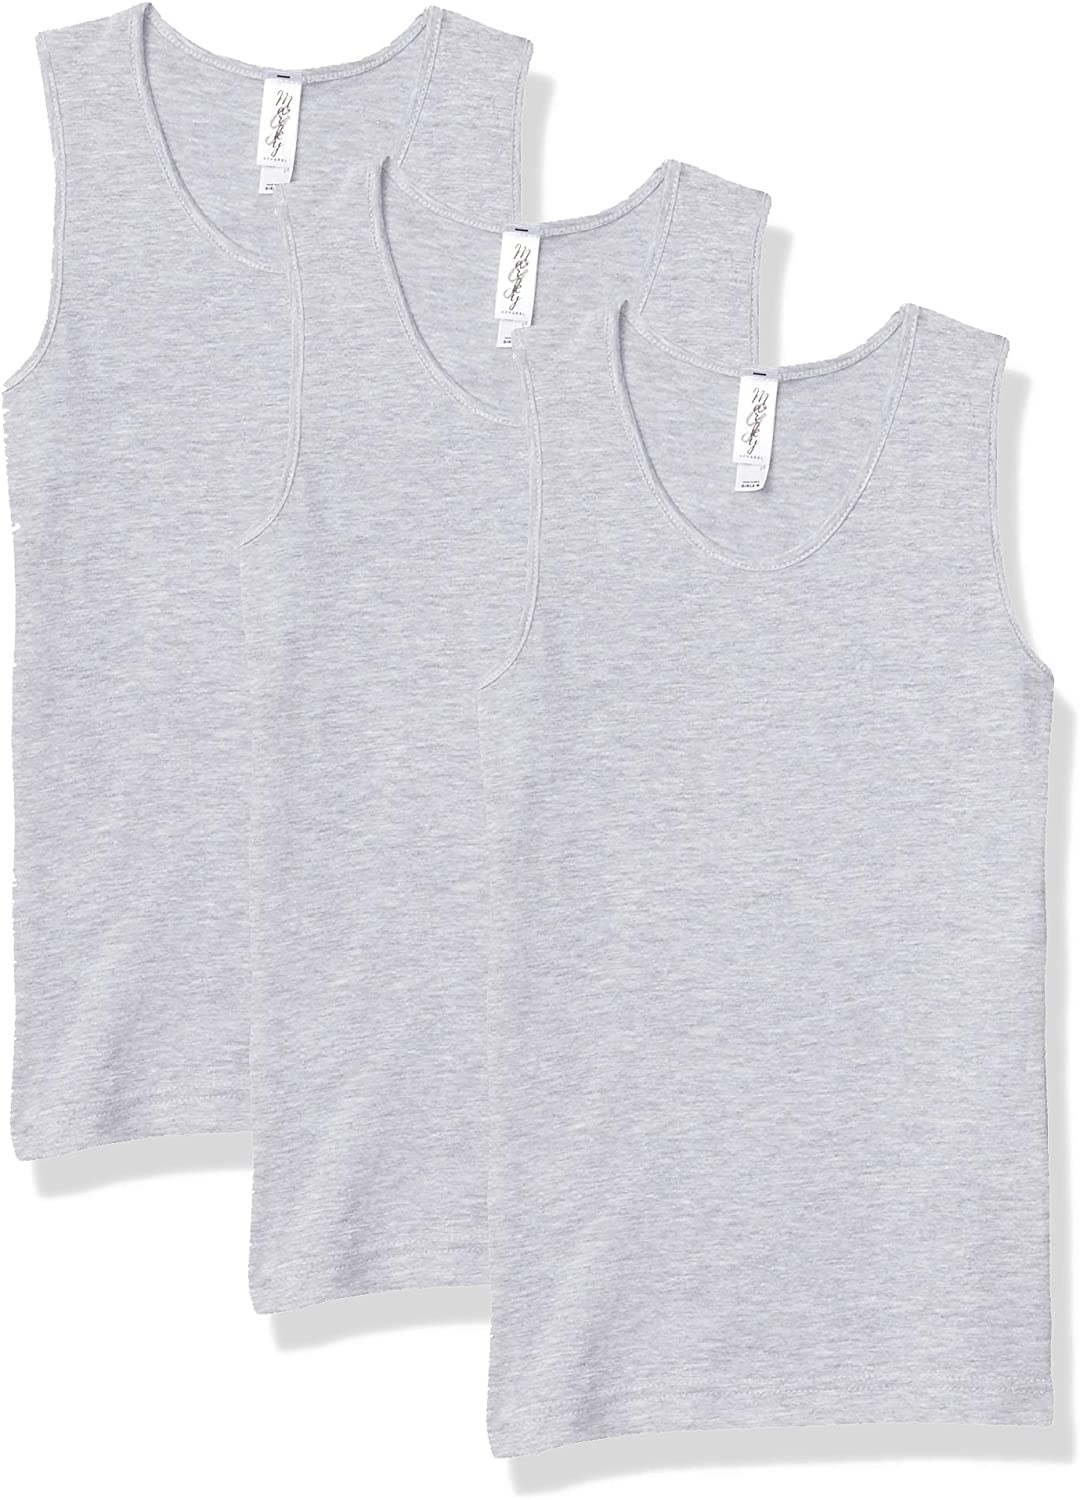 Marky G Apparel Girls Fine Jersey Tank